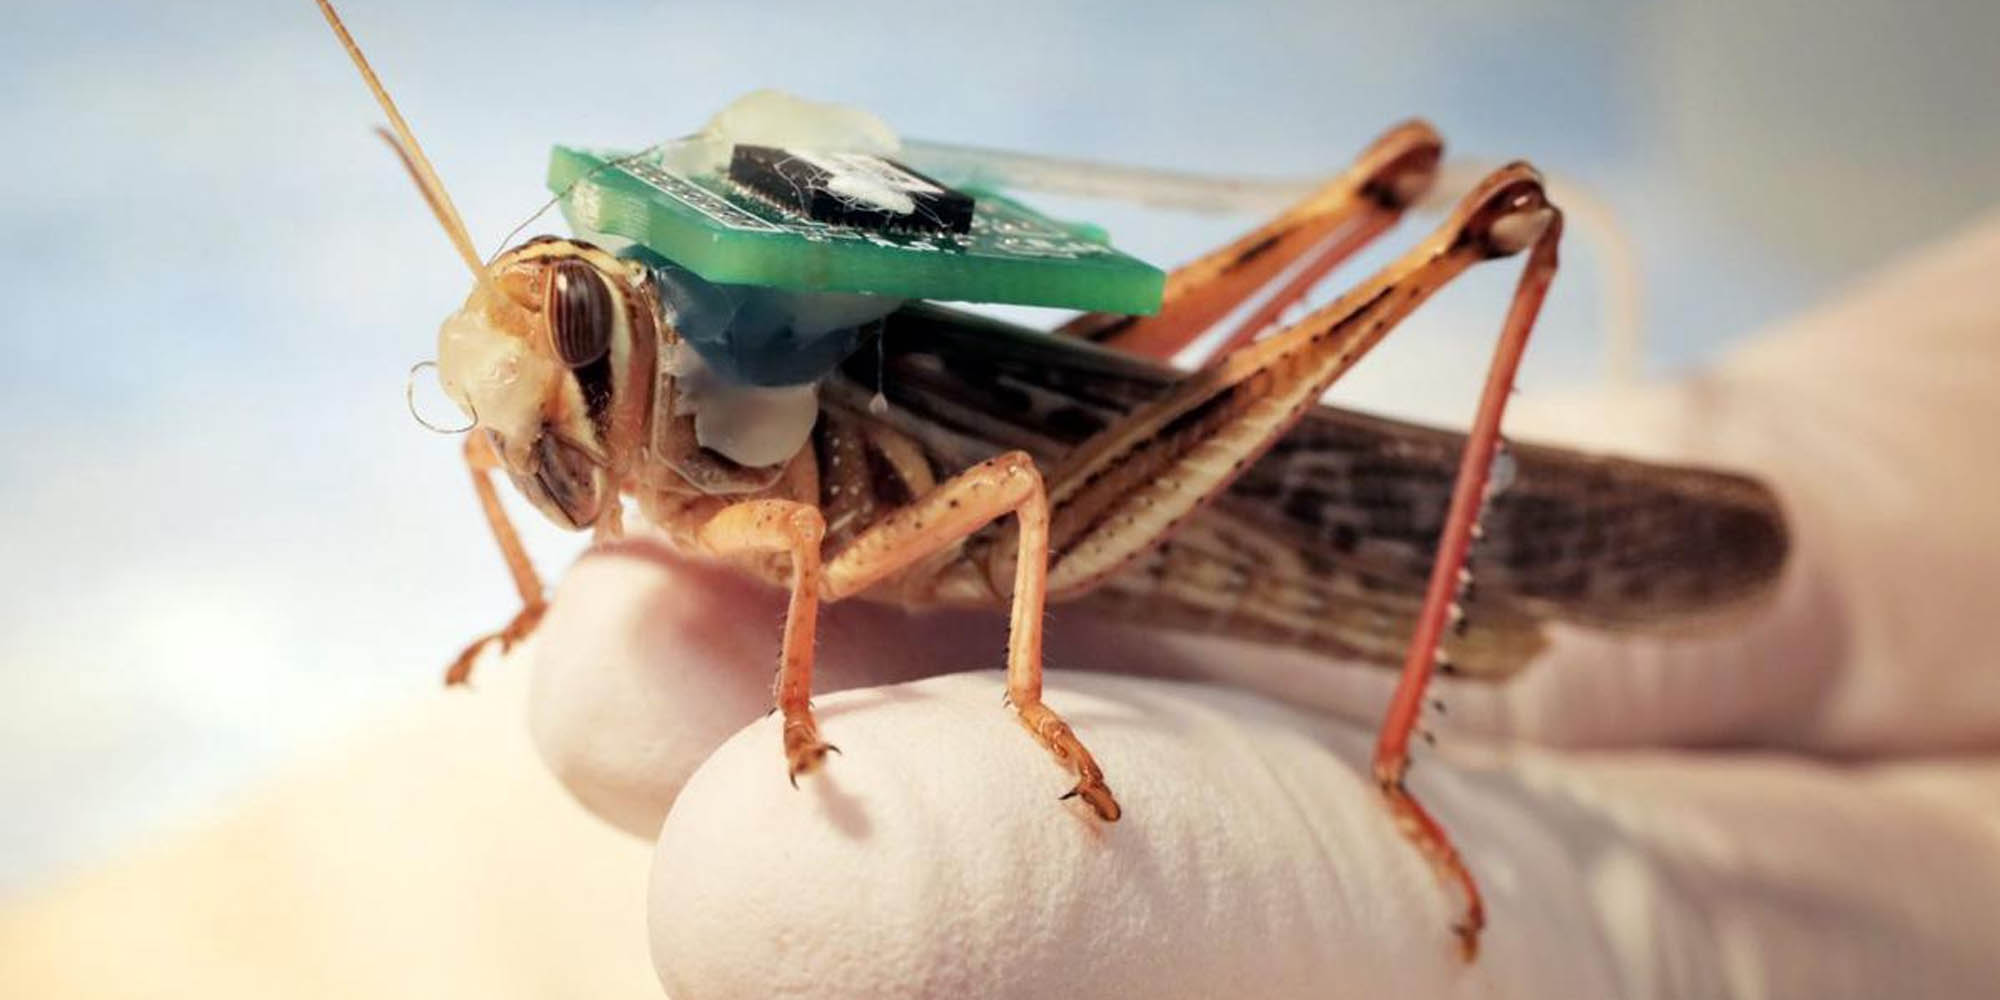 Bomb-sniffing locusts are here and funded by the US Navy - DroneDJ